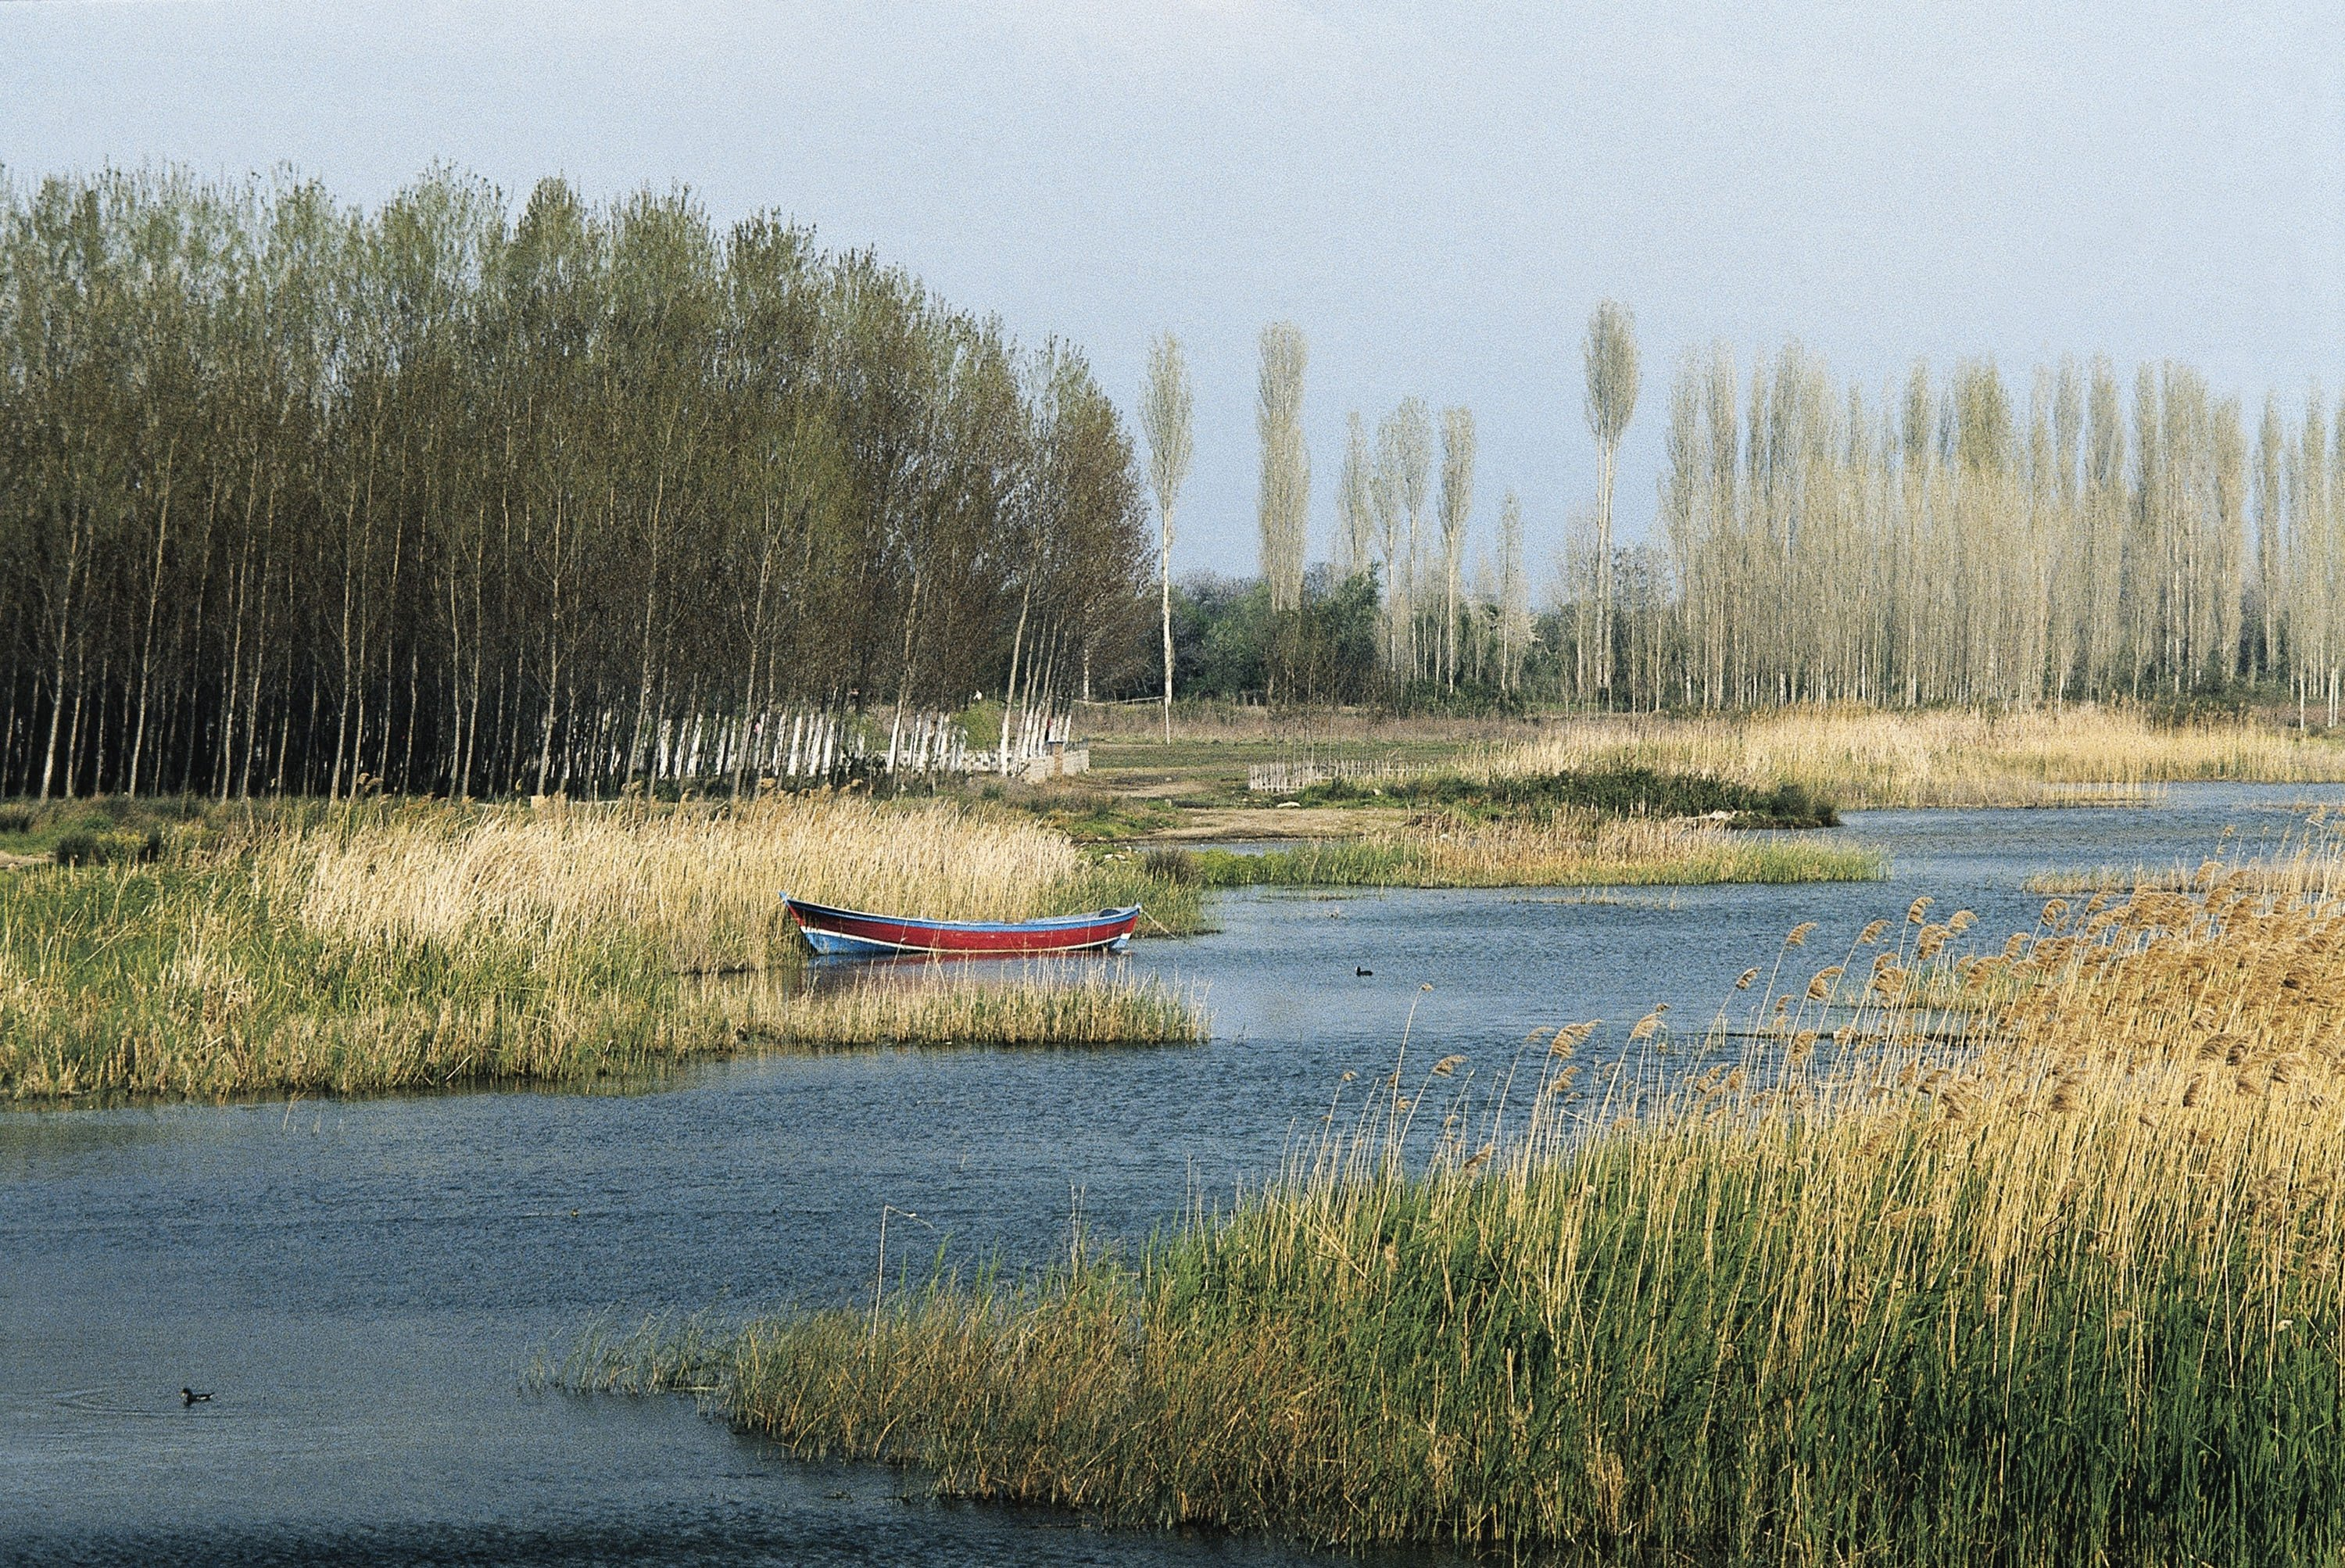 Lake Iznik offers visitors the chance for a serene boat trip amid nature in Bursa, northwestern Turkey. (Getty Images)